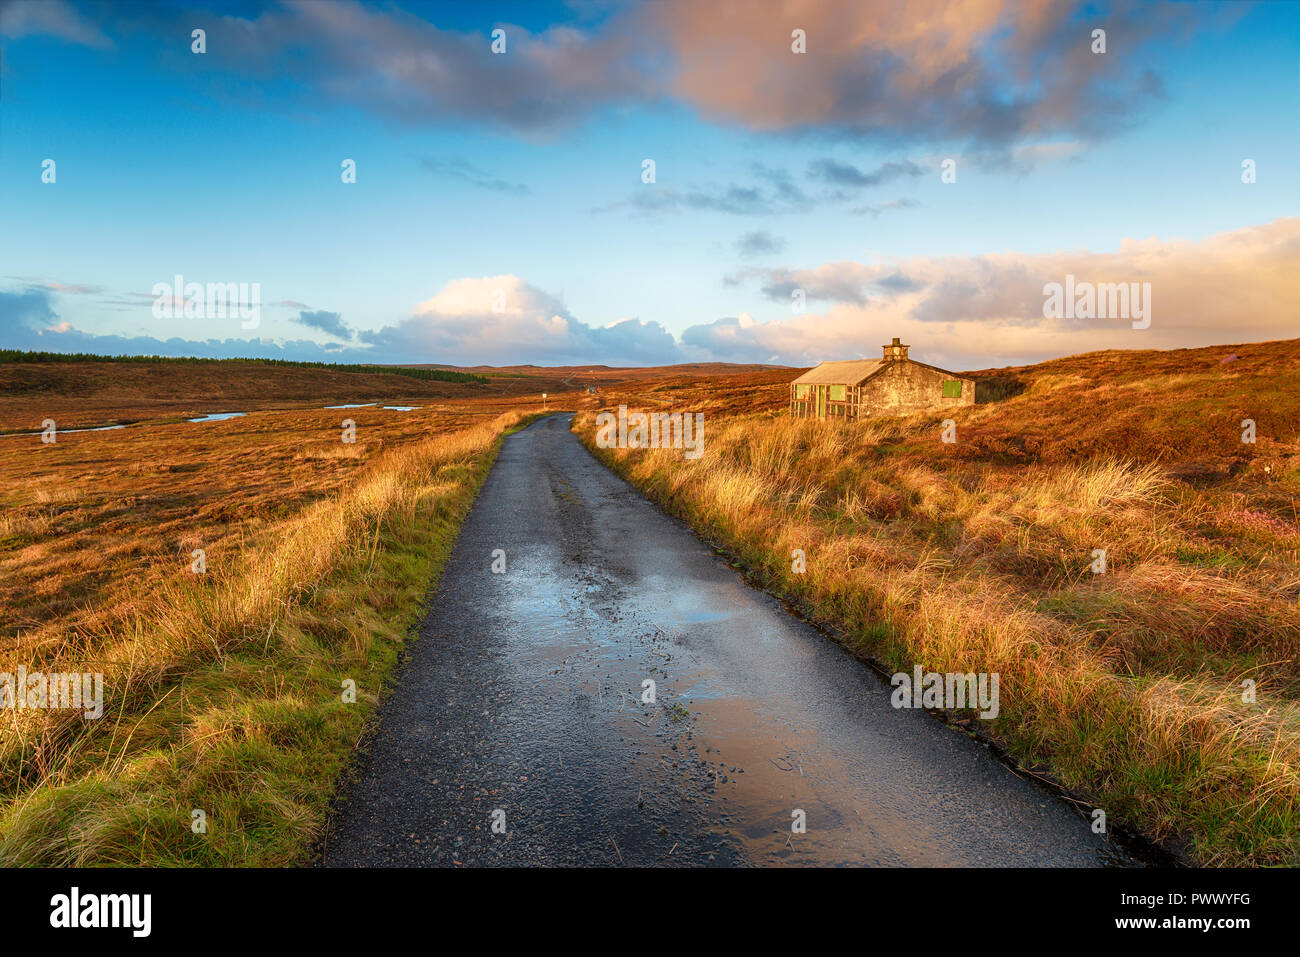 A single track road over a peat bog and past a shieling hut near Stornoway on the Isle of Lewis in the Outer Hebrides in Scotland - Stock Image